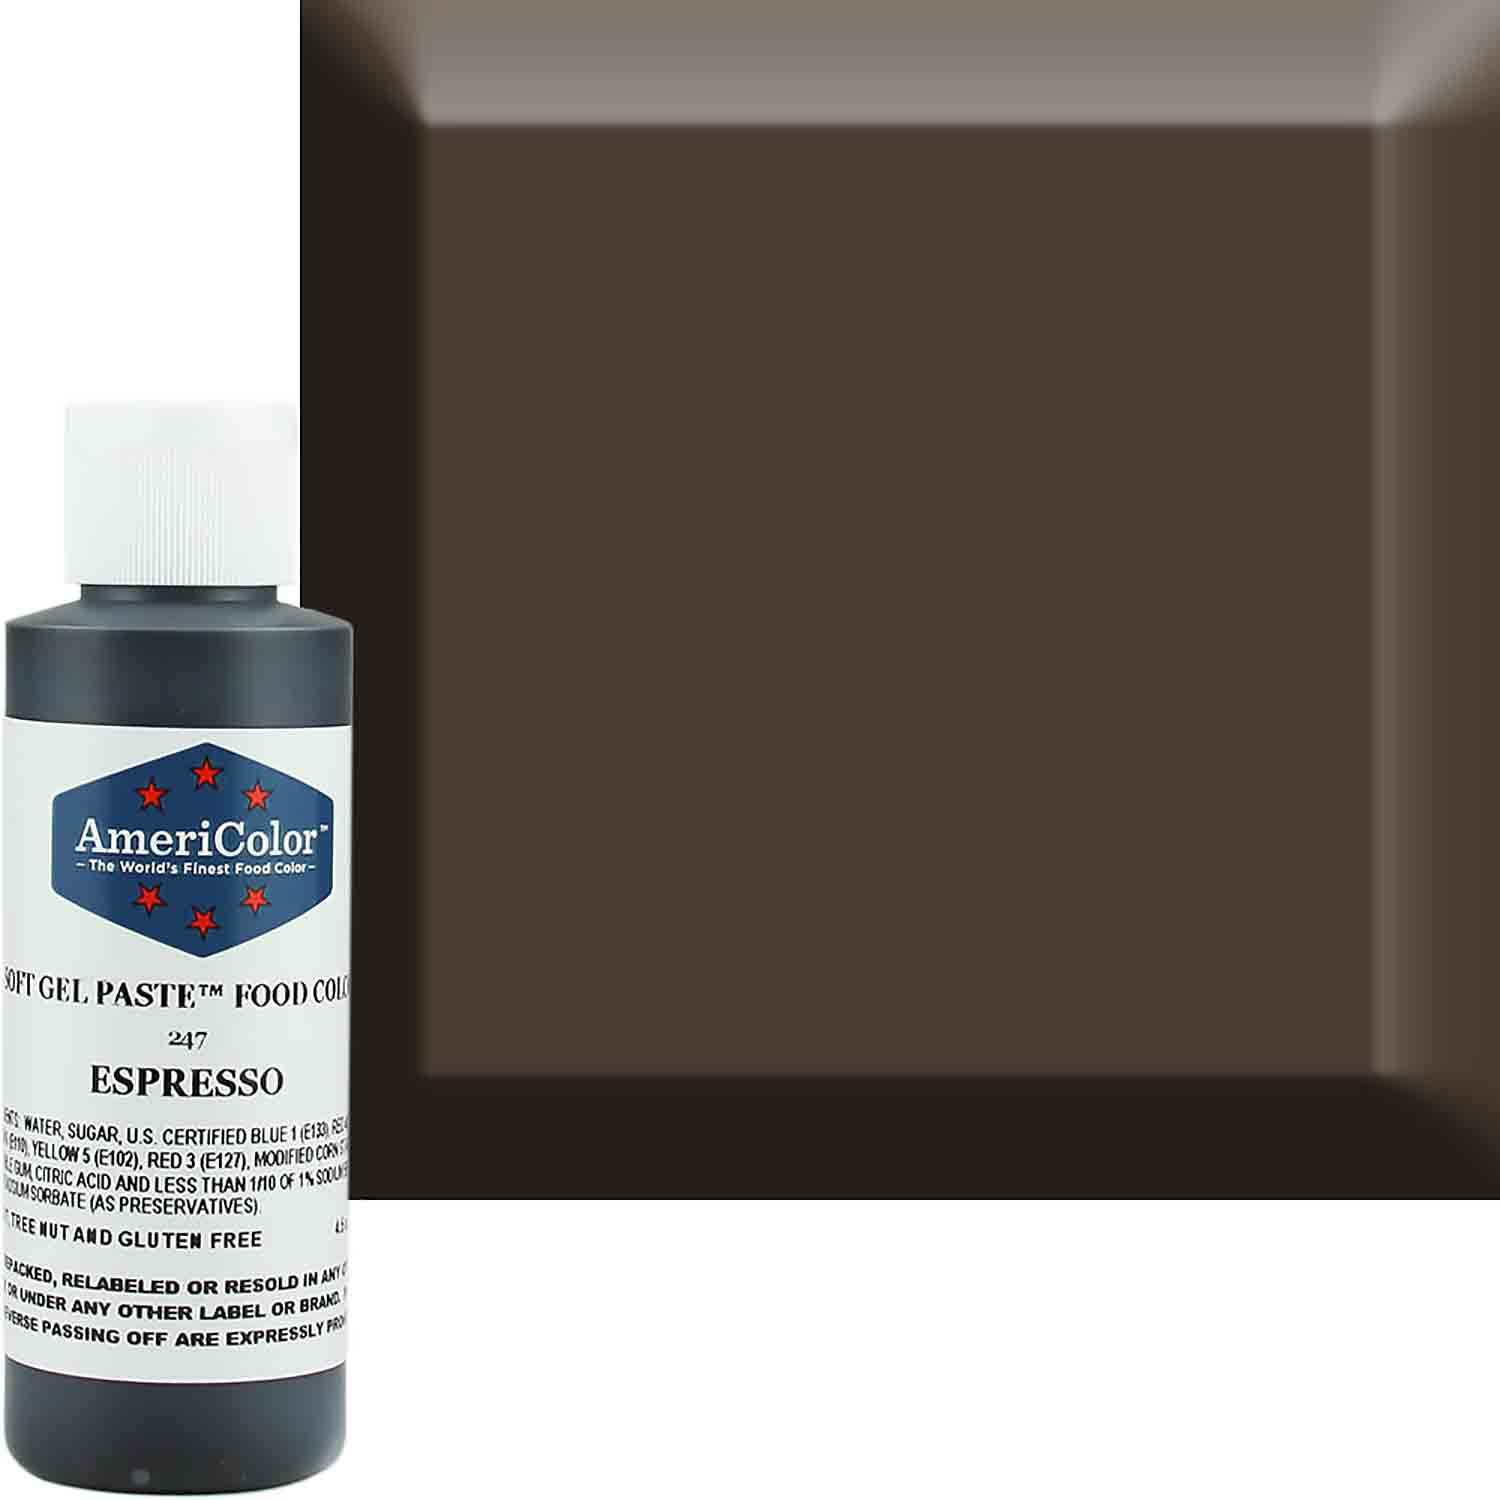 Espresso Soft Gel Paste™ Food Color